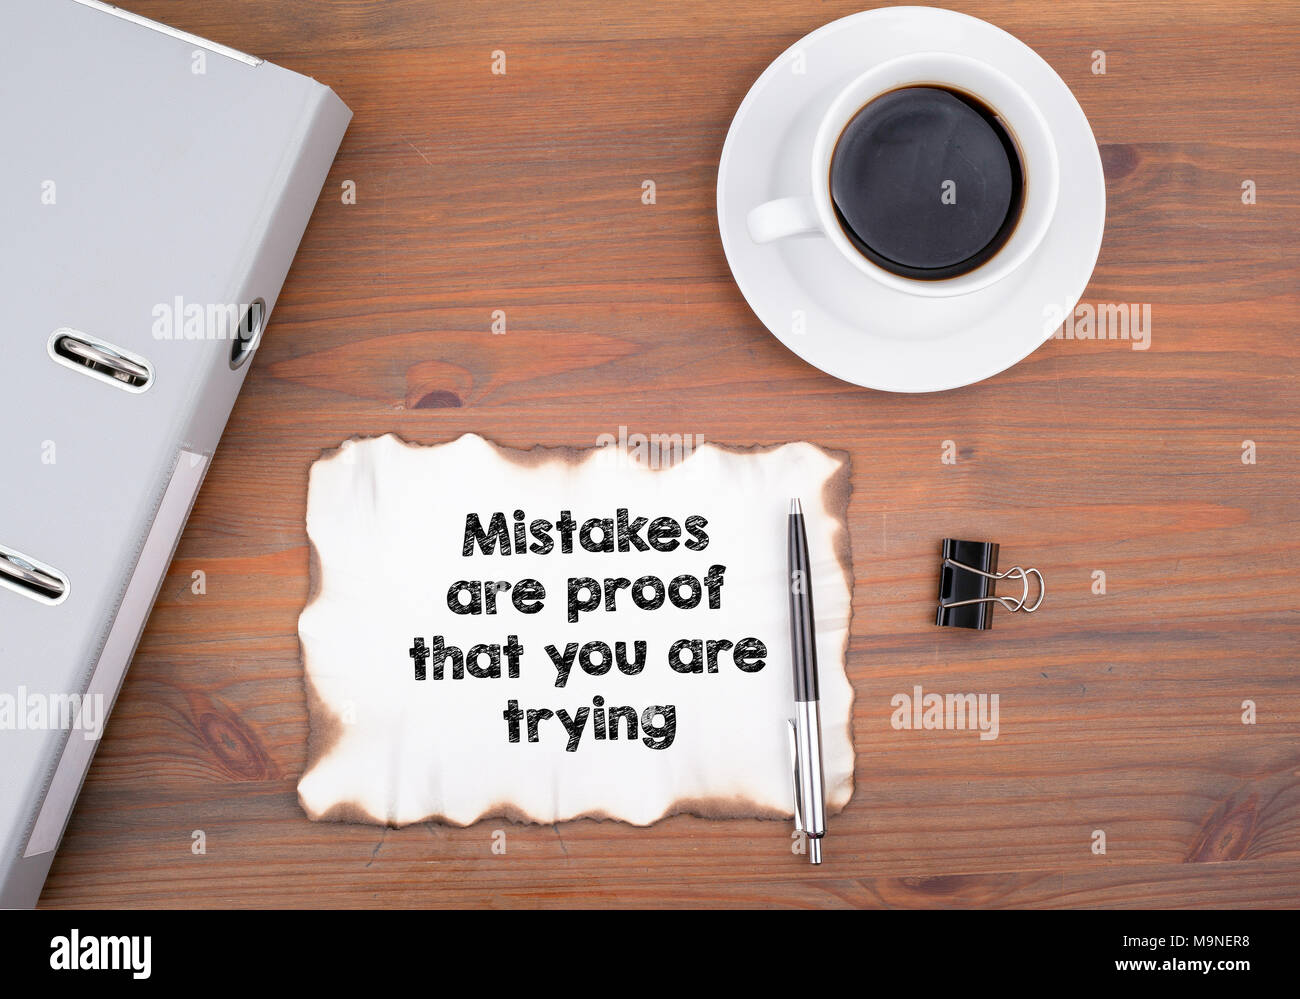 Mistakes are proof that you are trying - Stock Image